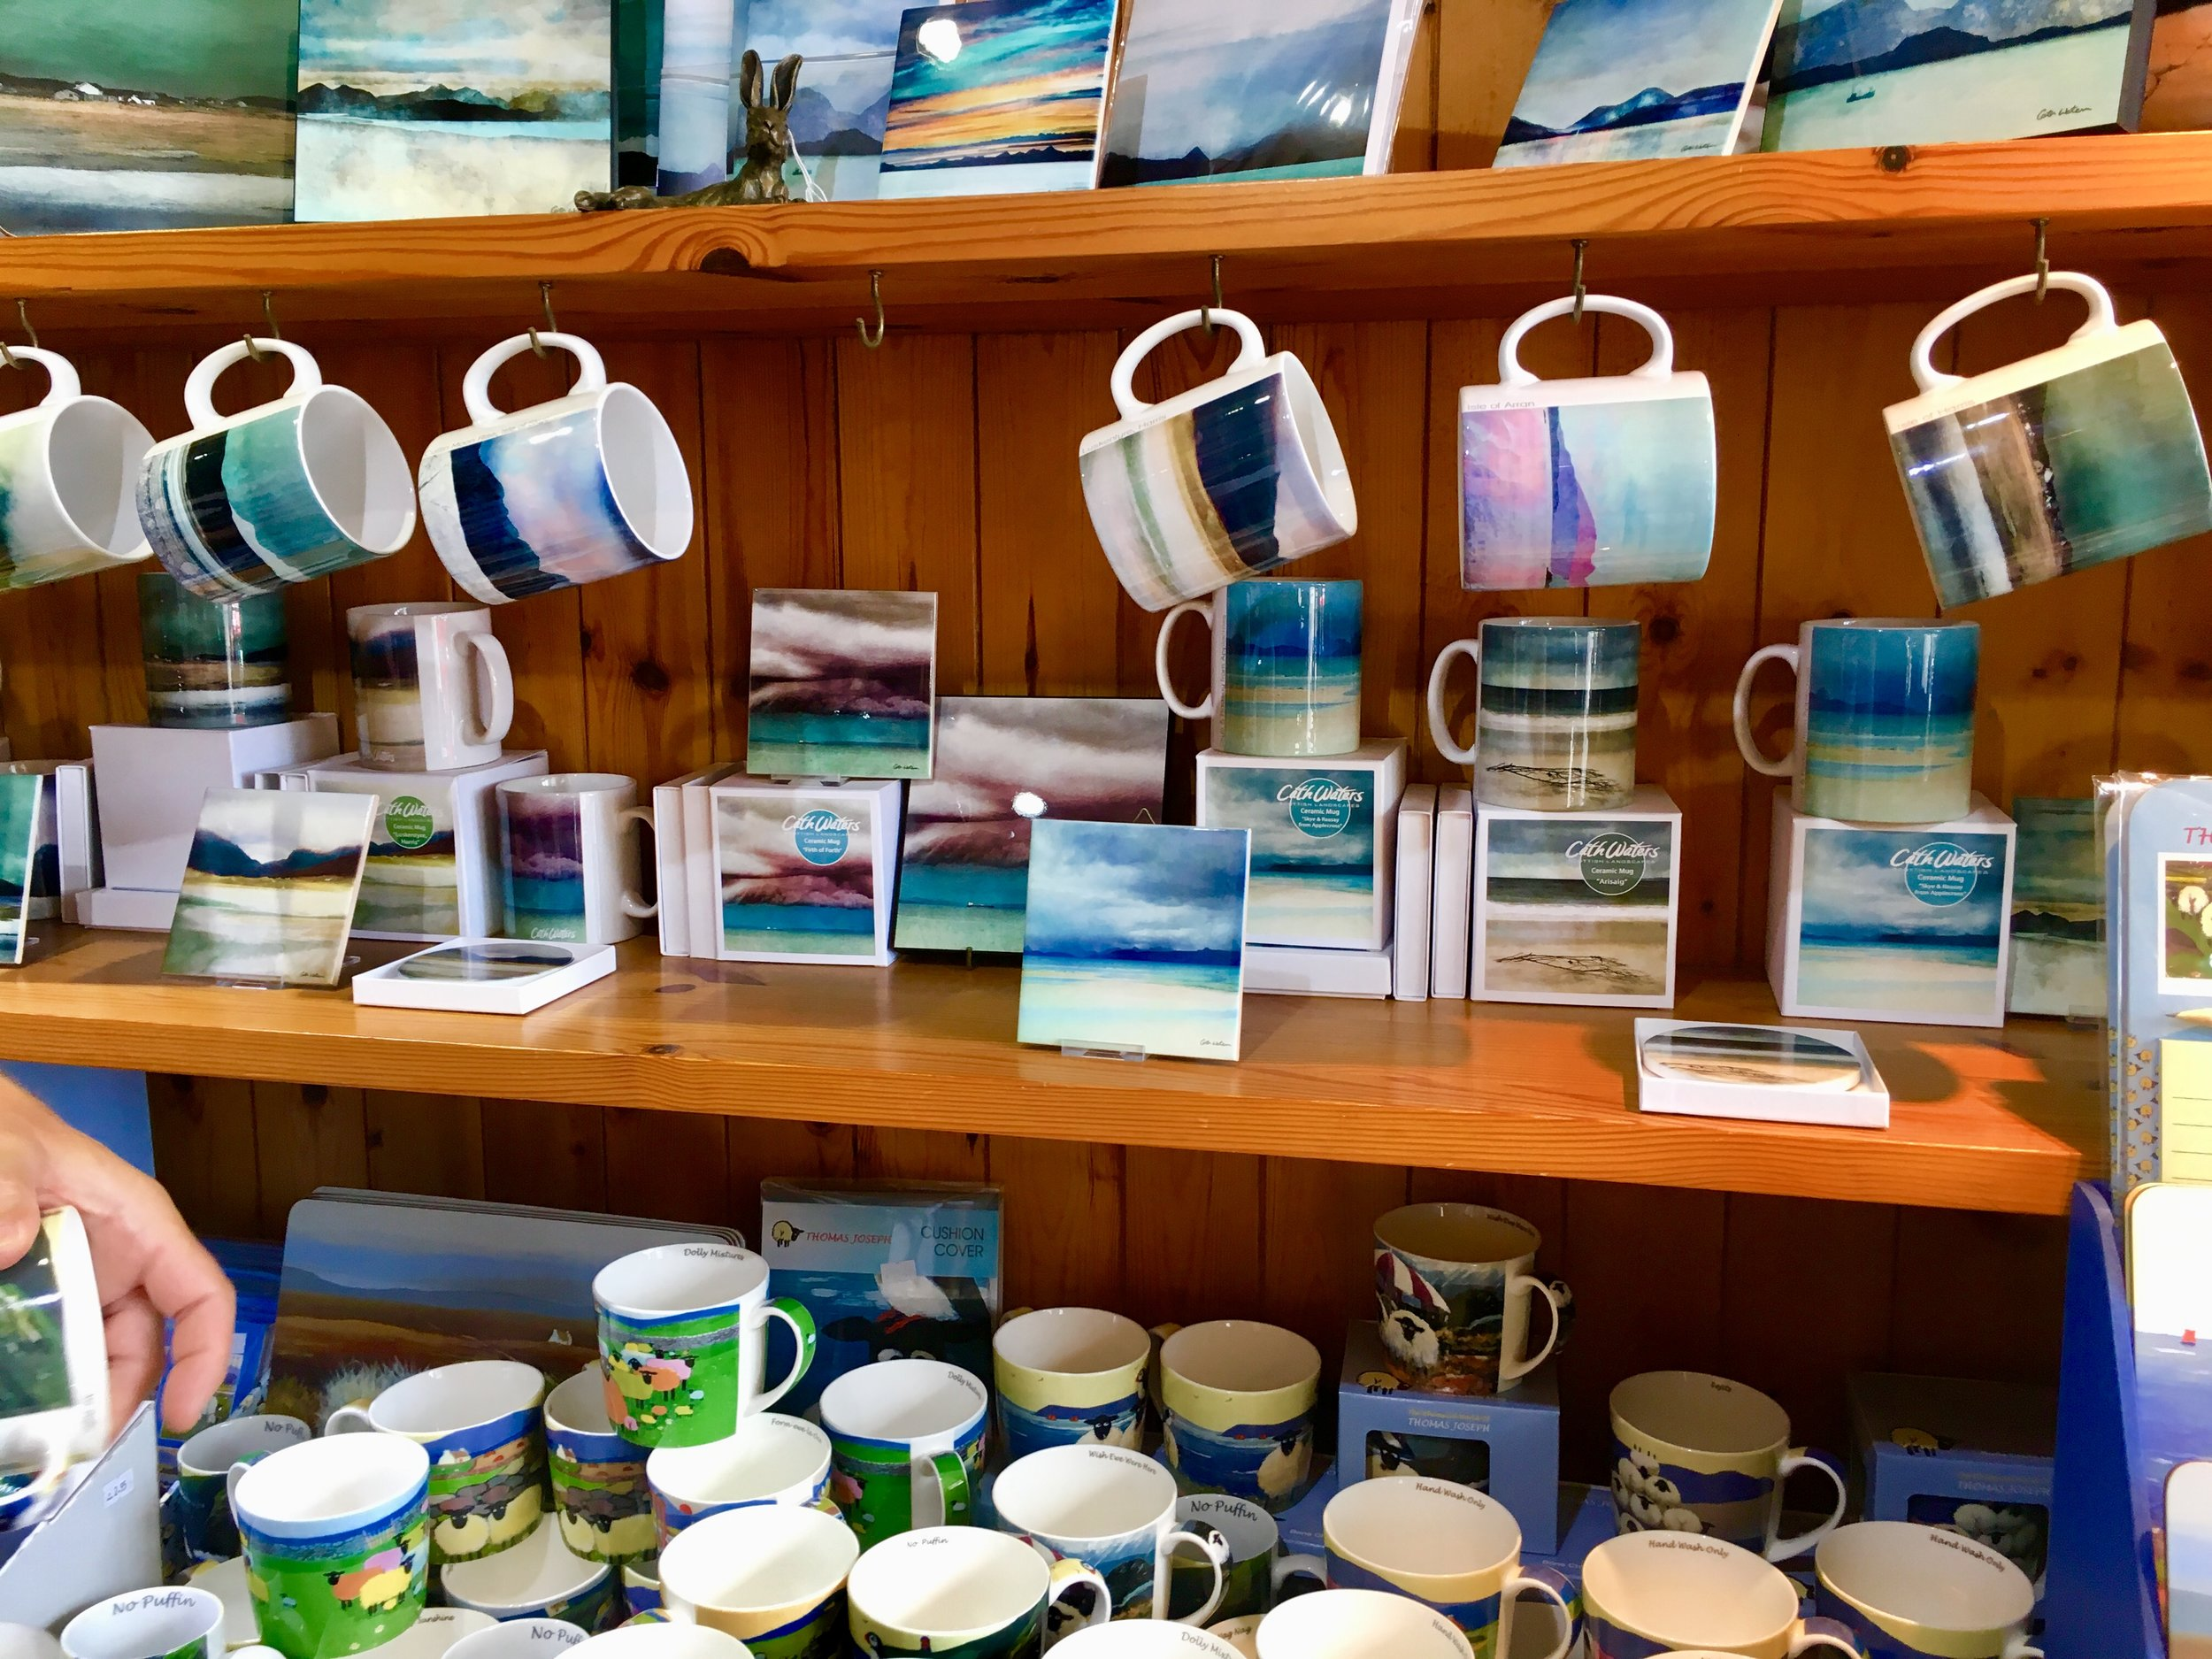 The selection of mugs with abstract vistas is a popular sell at Mull Pottery.